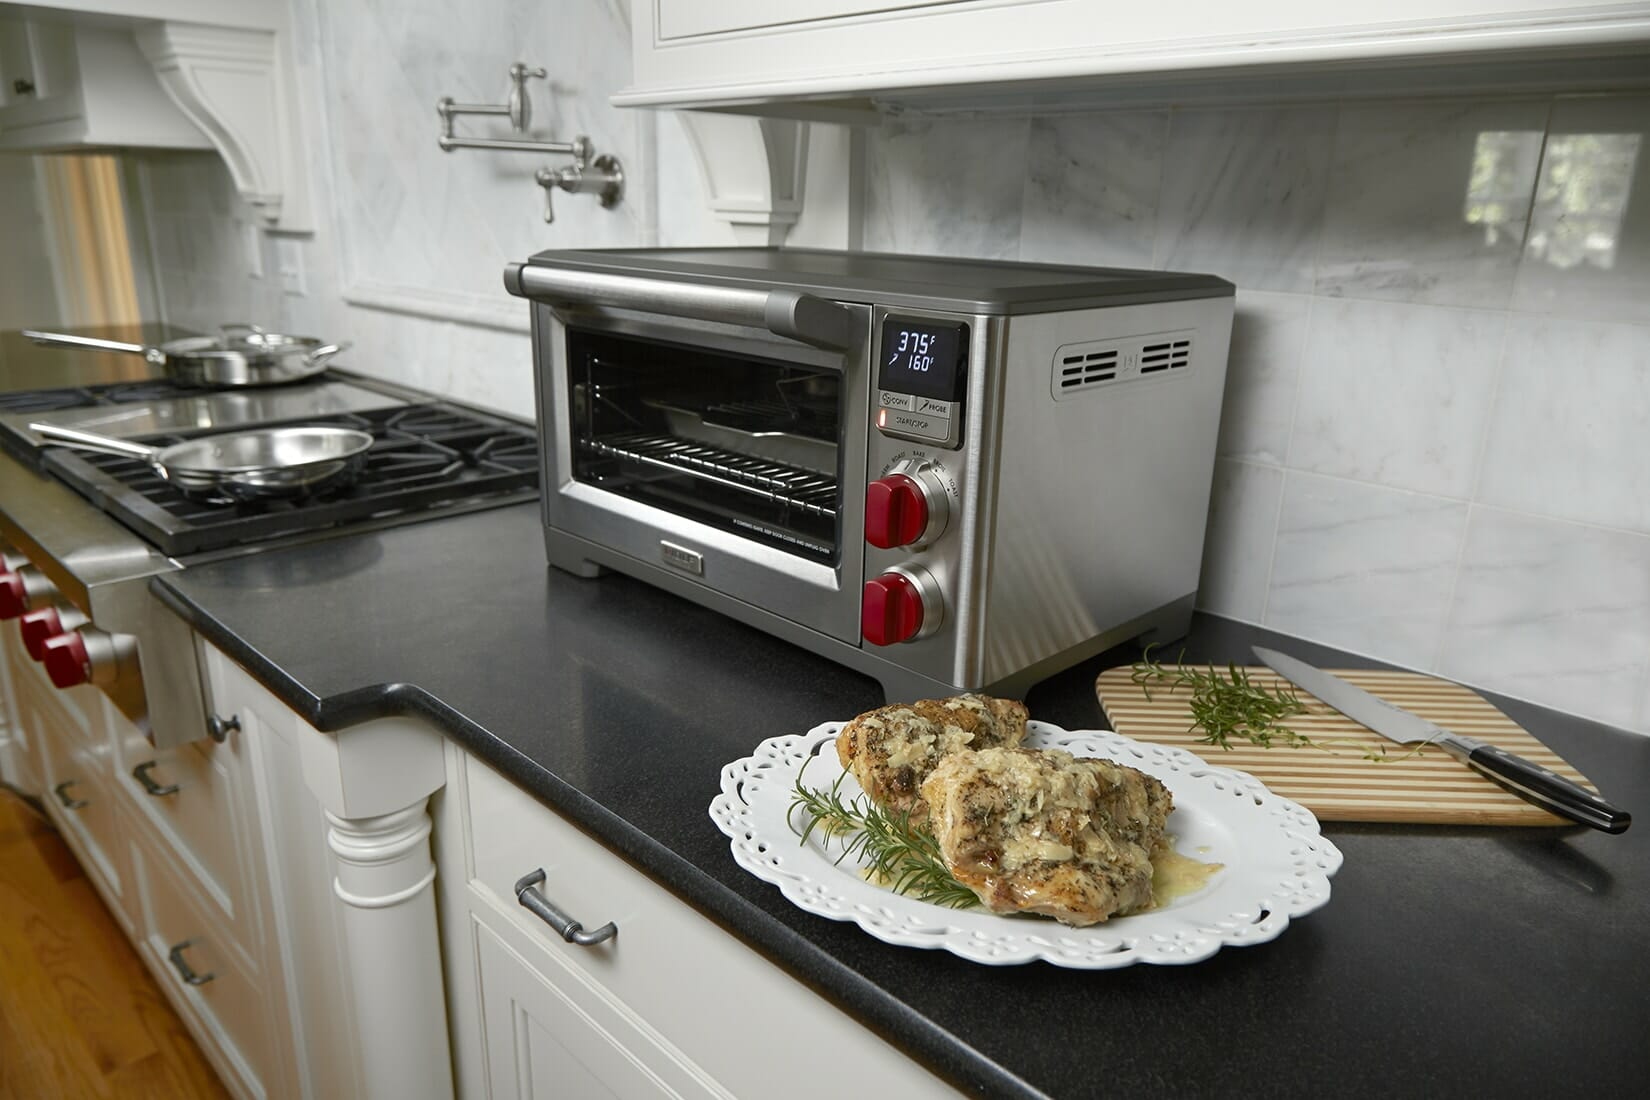 Chicken breast in toaster oven